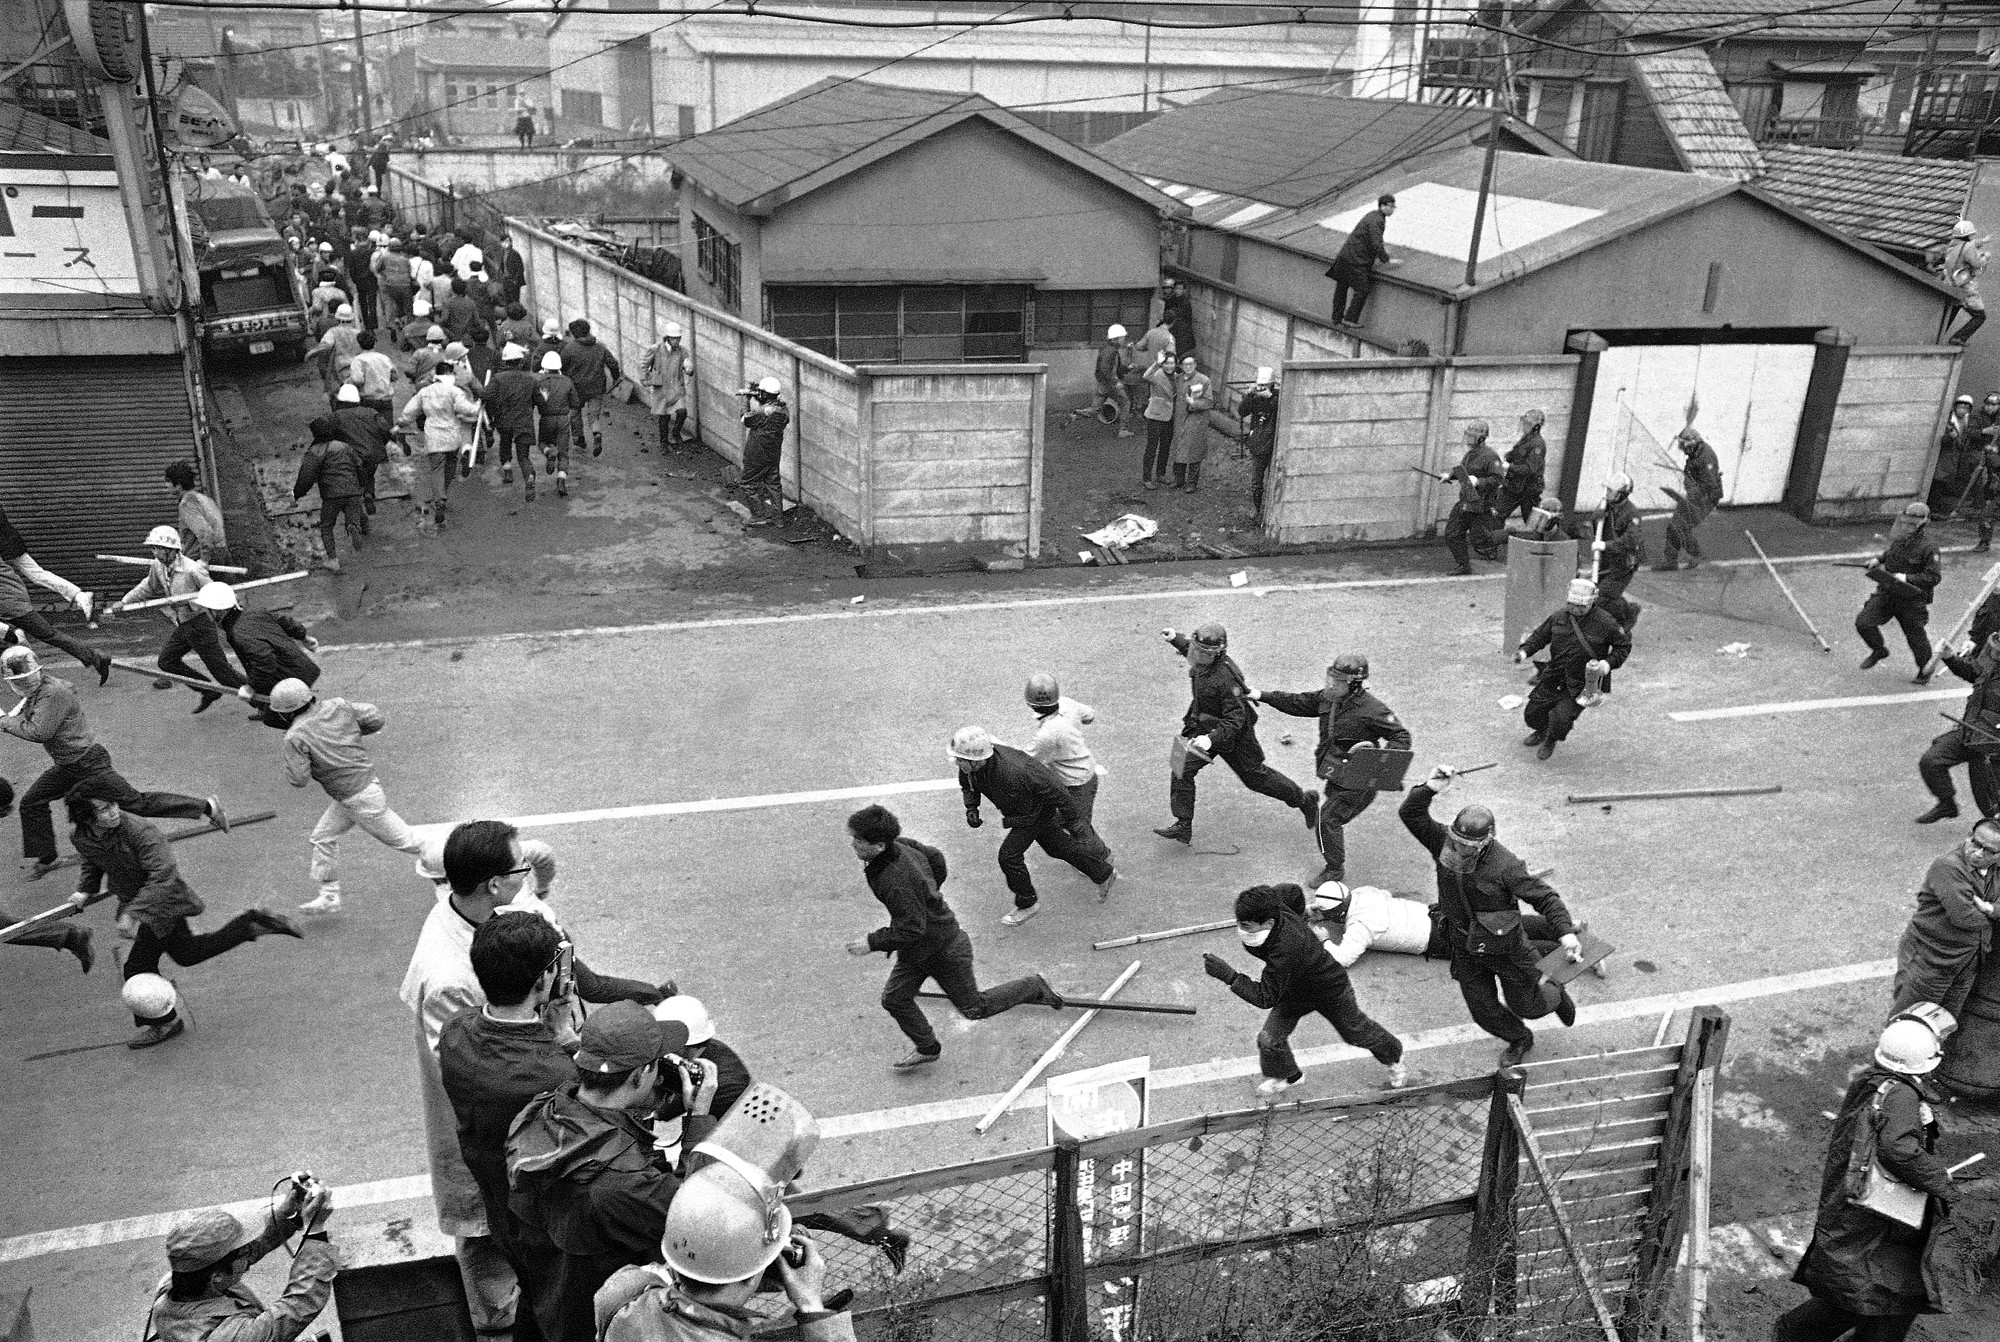 the causes of civil unrest in the united states during 1960s A race riot, as defined by the merriam-webster dictionary , is a riot caused by   that the race riots that took place in the united states during the 1960s were the   during the 1960s, race riots broke out in many larger cities, where there was a   75 stores in the neighborhood were burned during the first 2 days of the rioting.